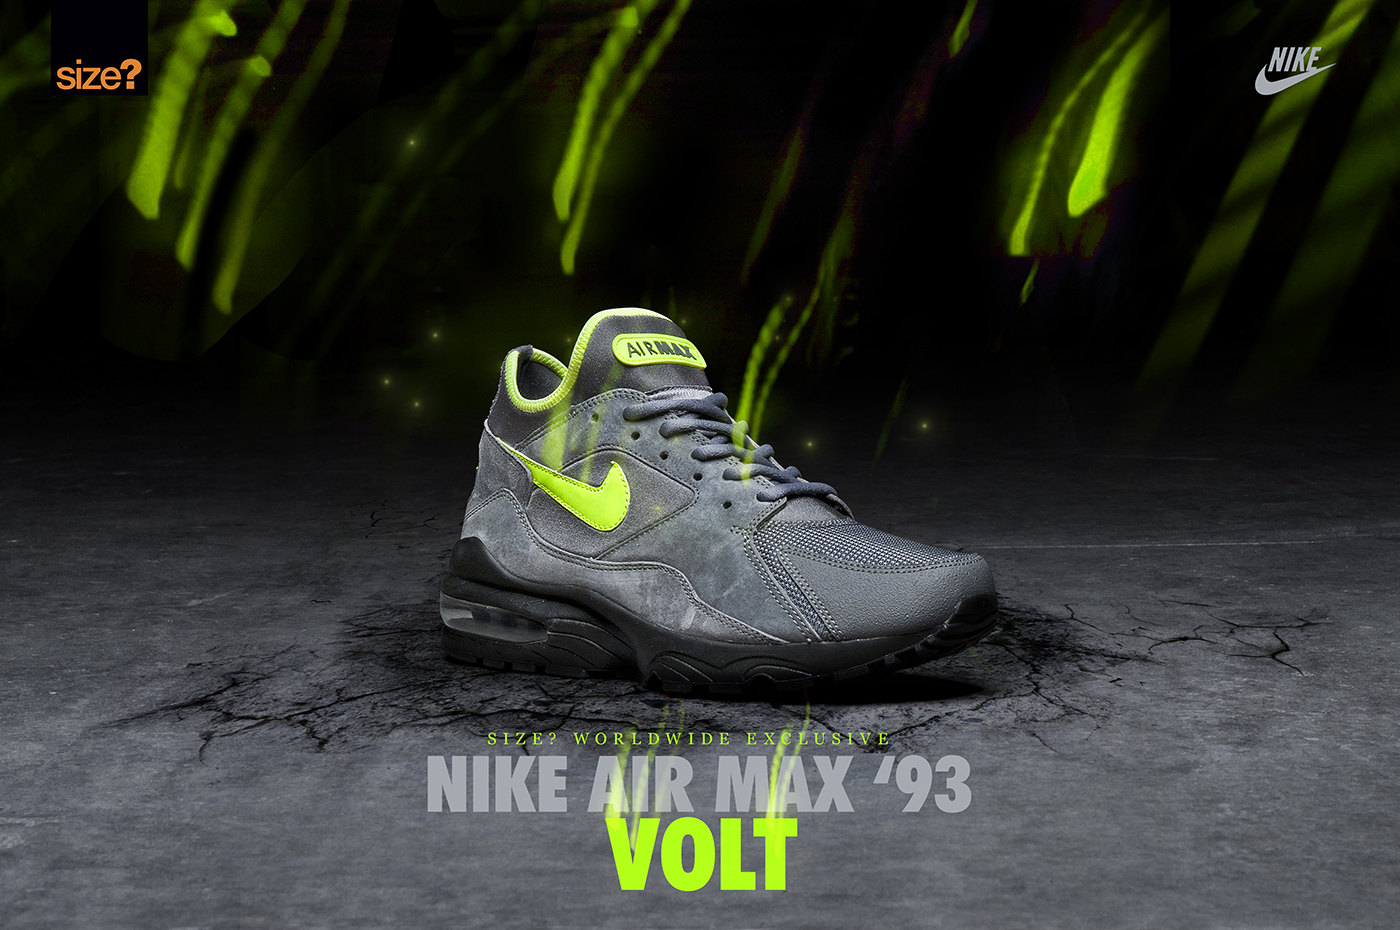 Nike Air Max '93 'Volt' – size? Worldwide Exclusive